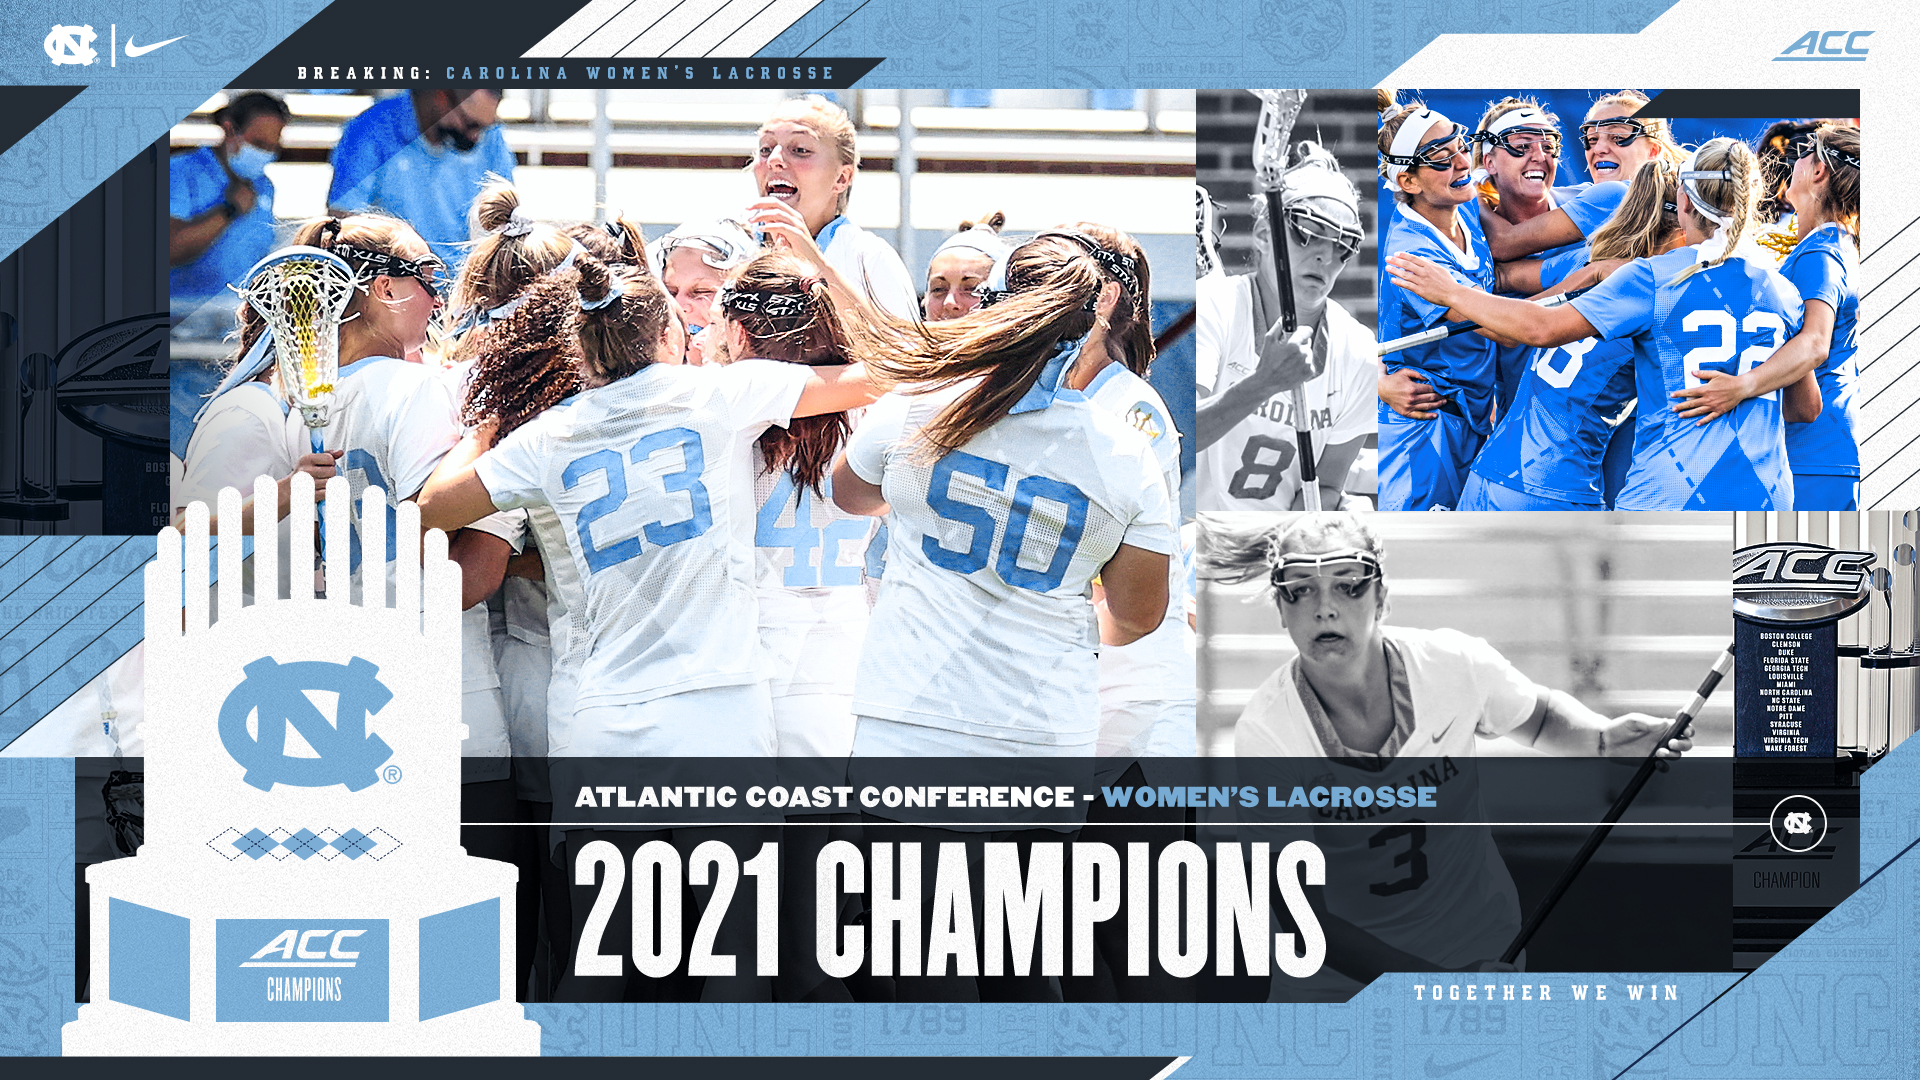 Photos of the women's lacrosse team celebrating with text that reads